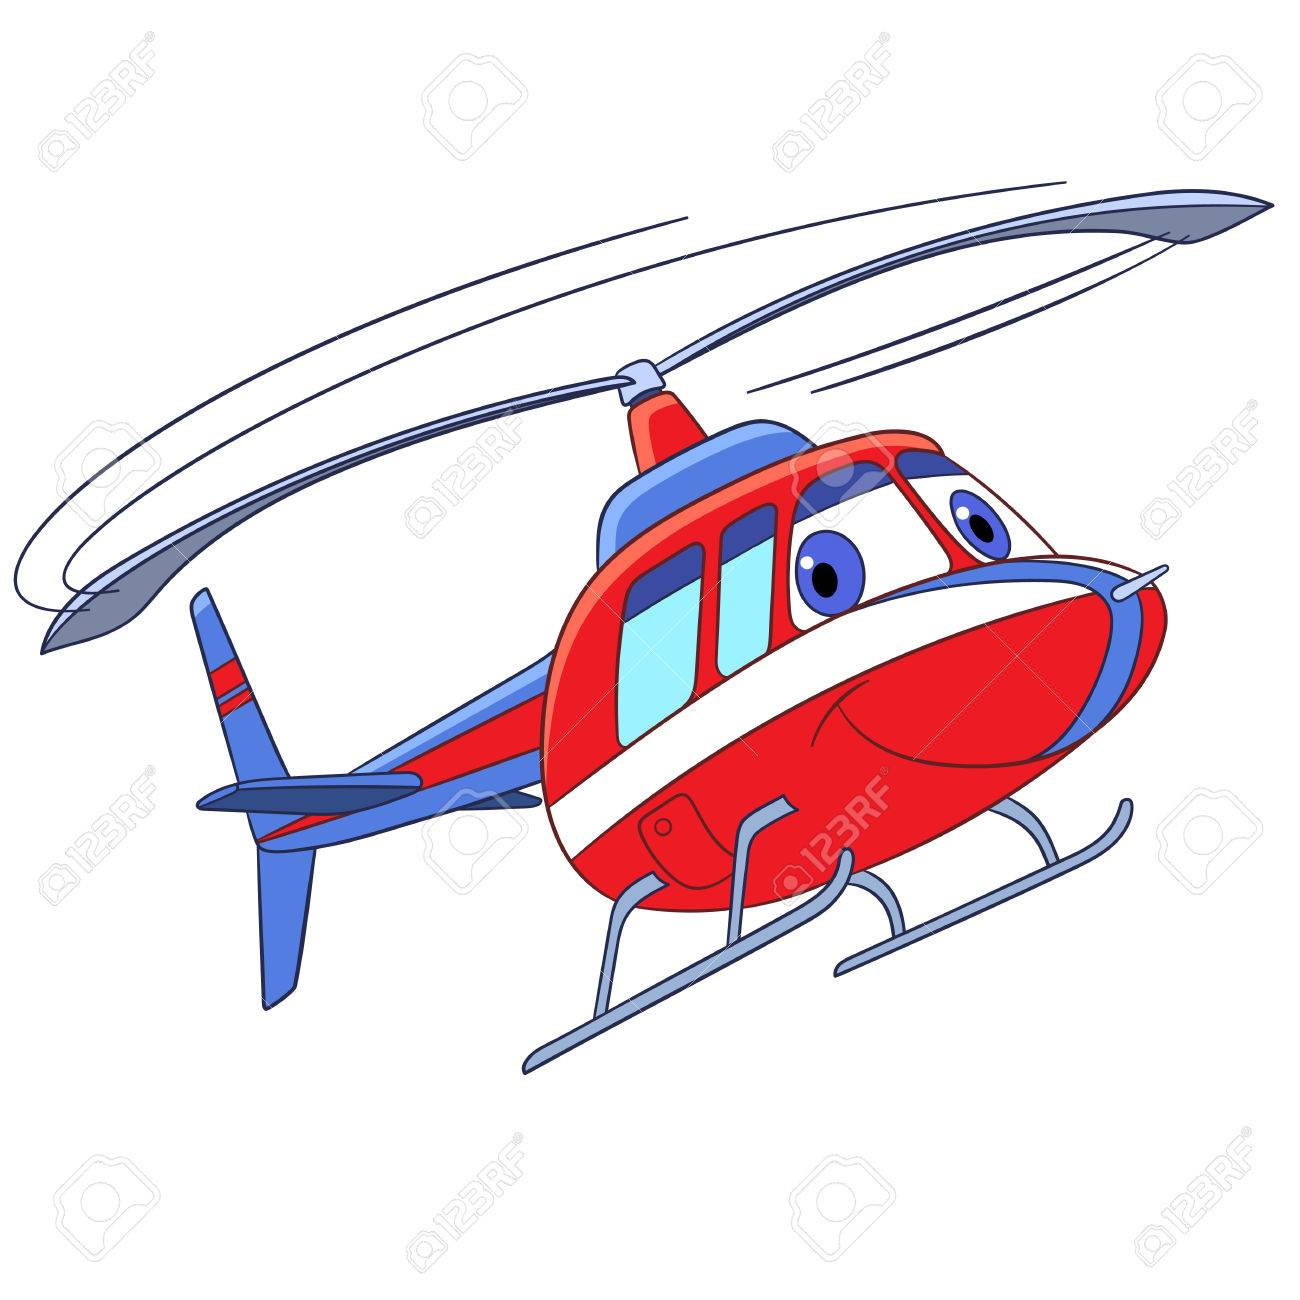 Cartoon flying transport. Helicopter, isolated on white background. Childish vector illustration and colorful book page for kids. - 69825232